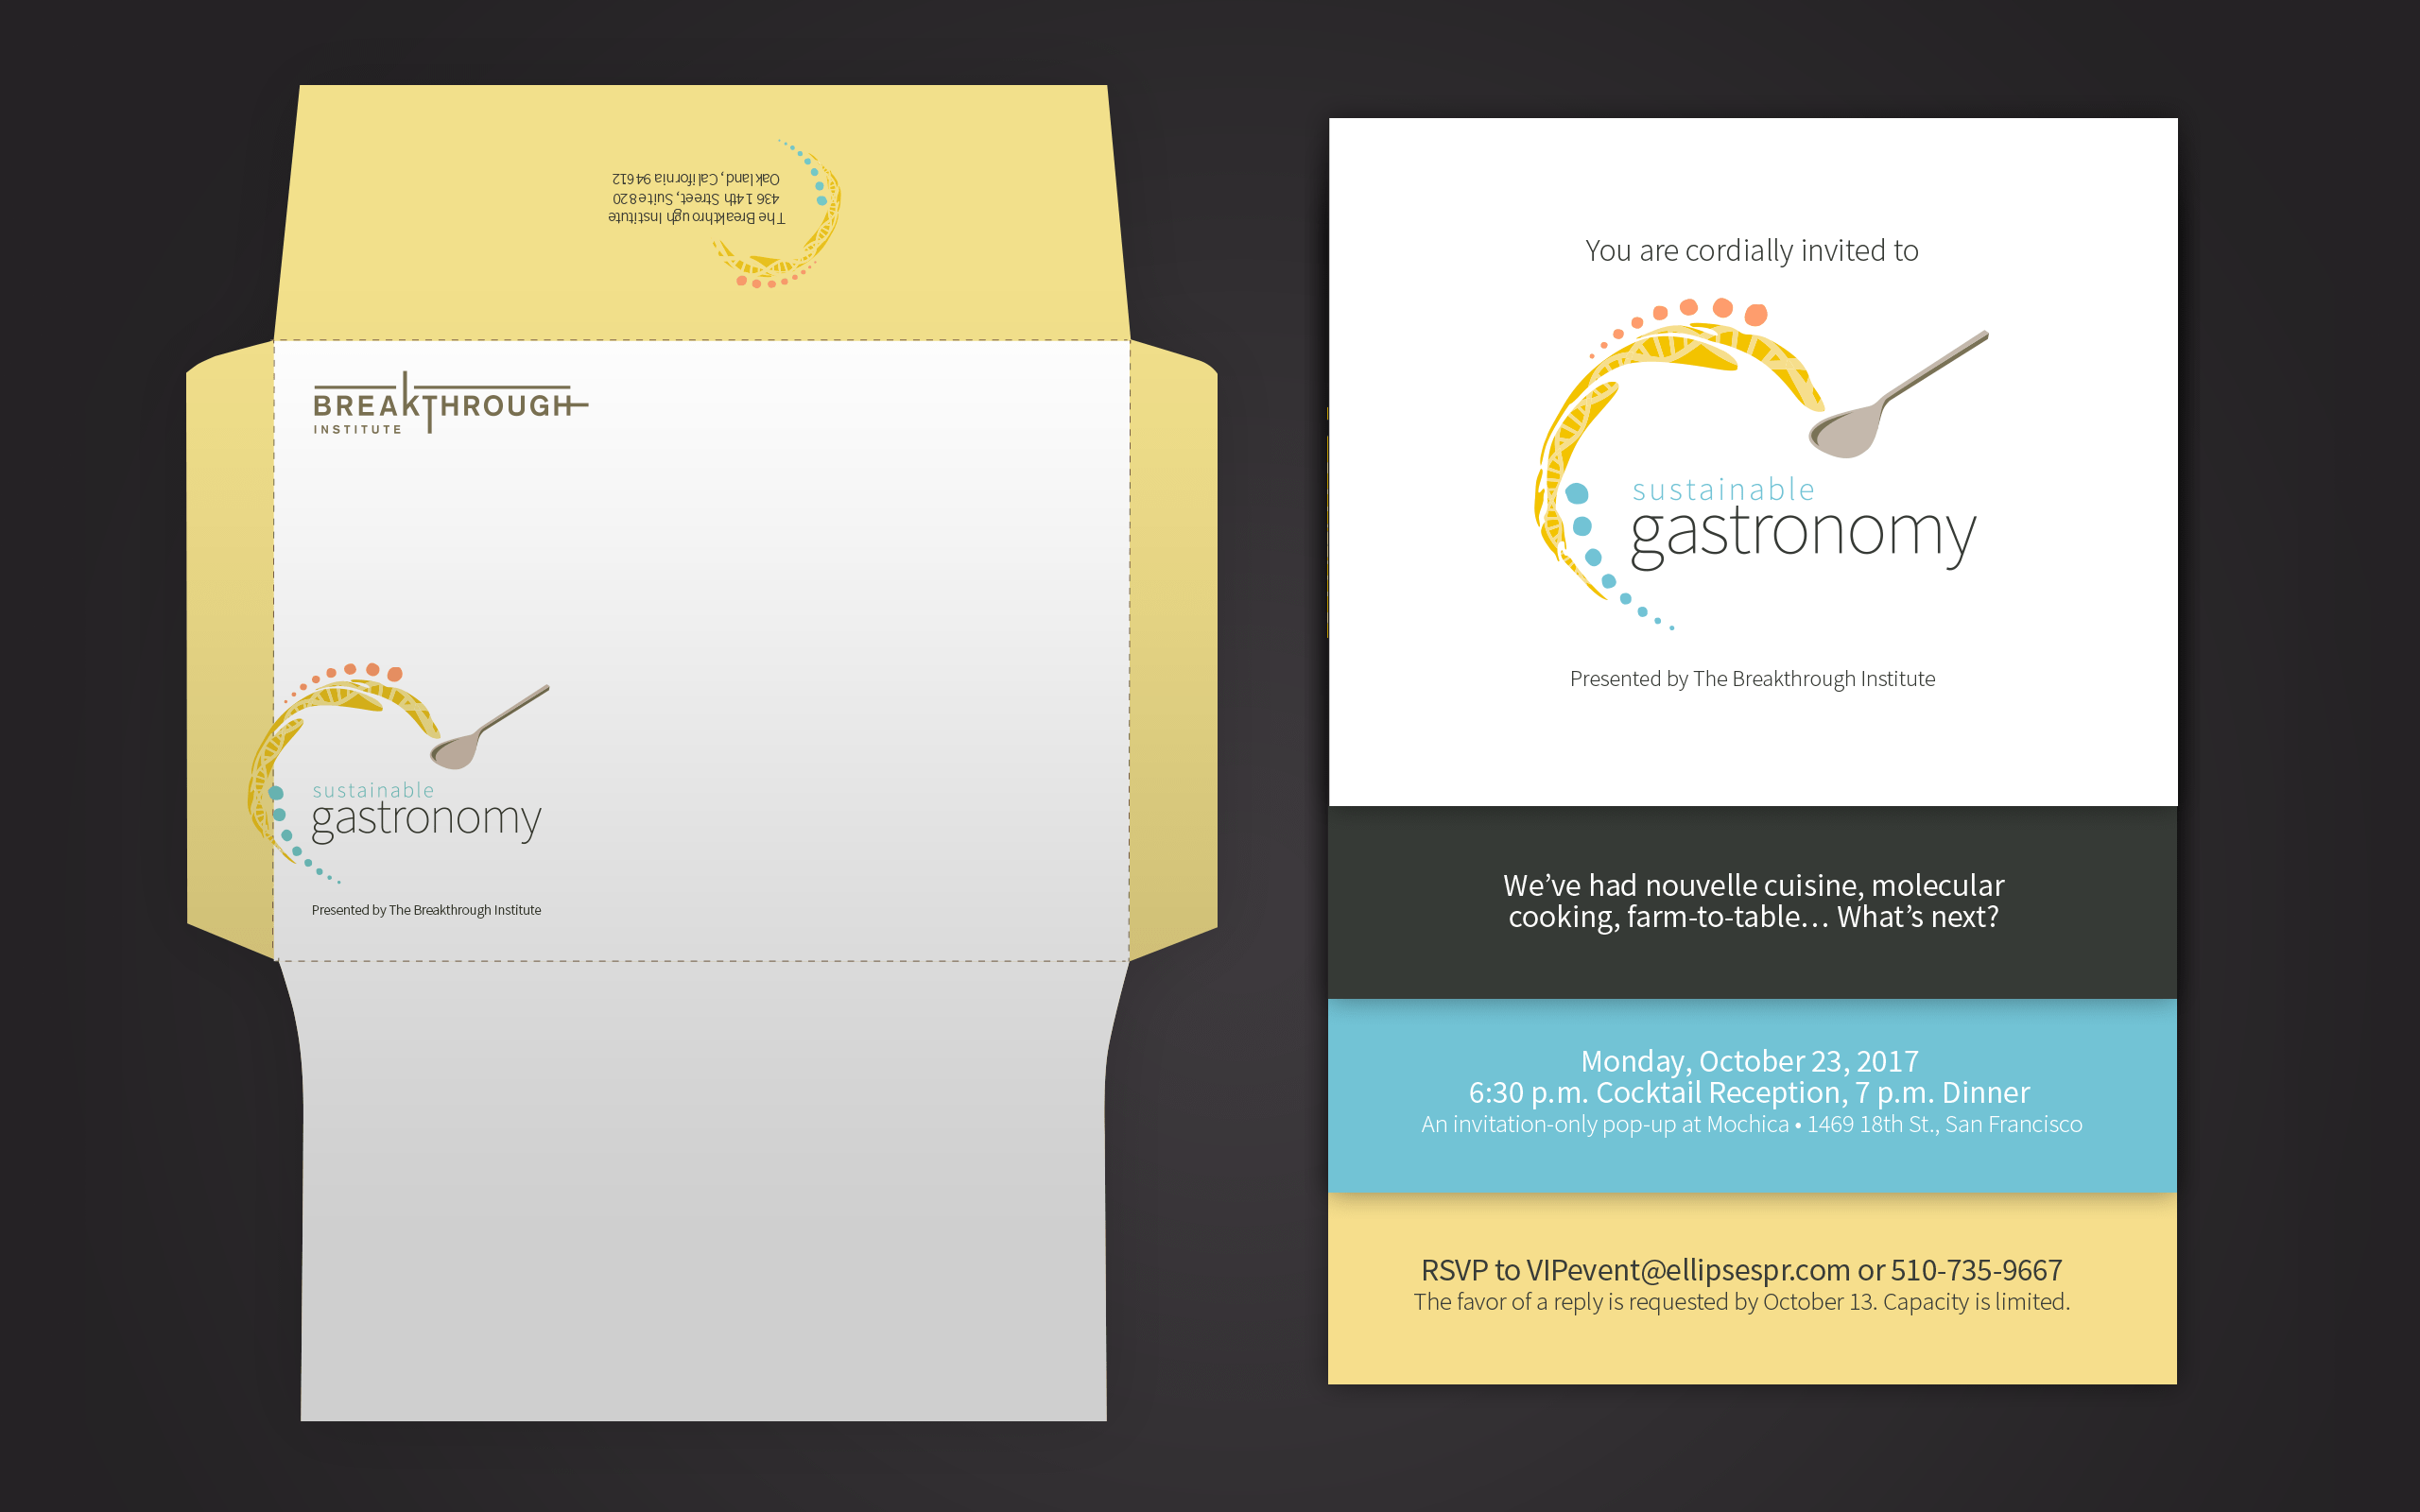 sustainable-gastronomy-envelope-and-invitation